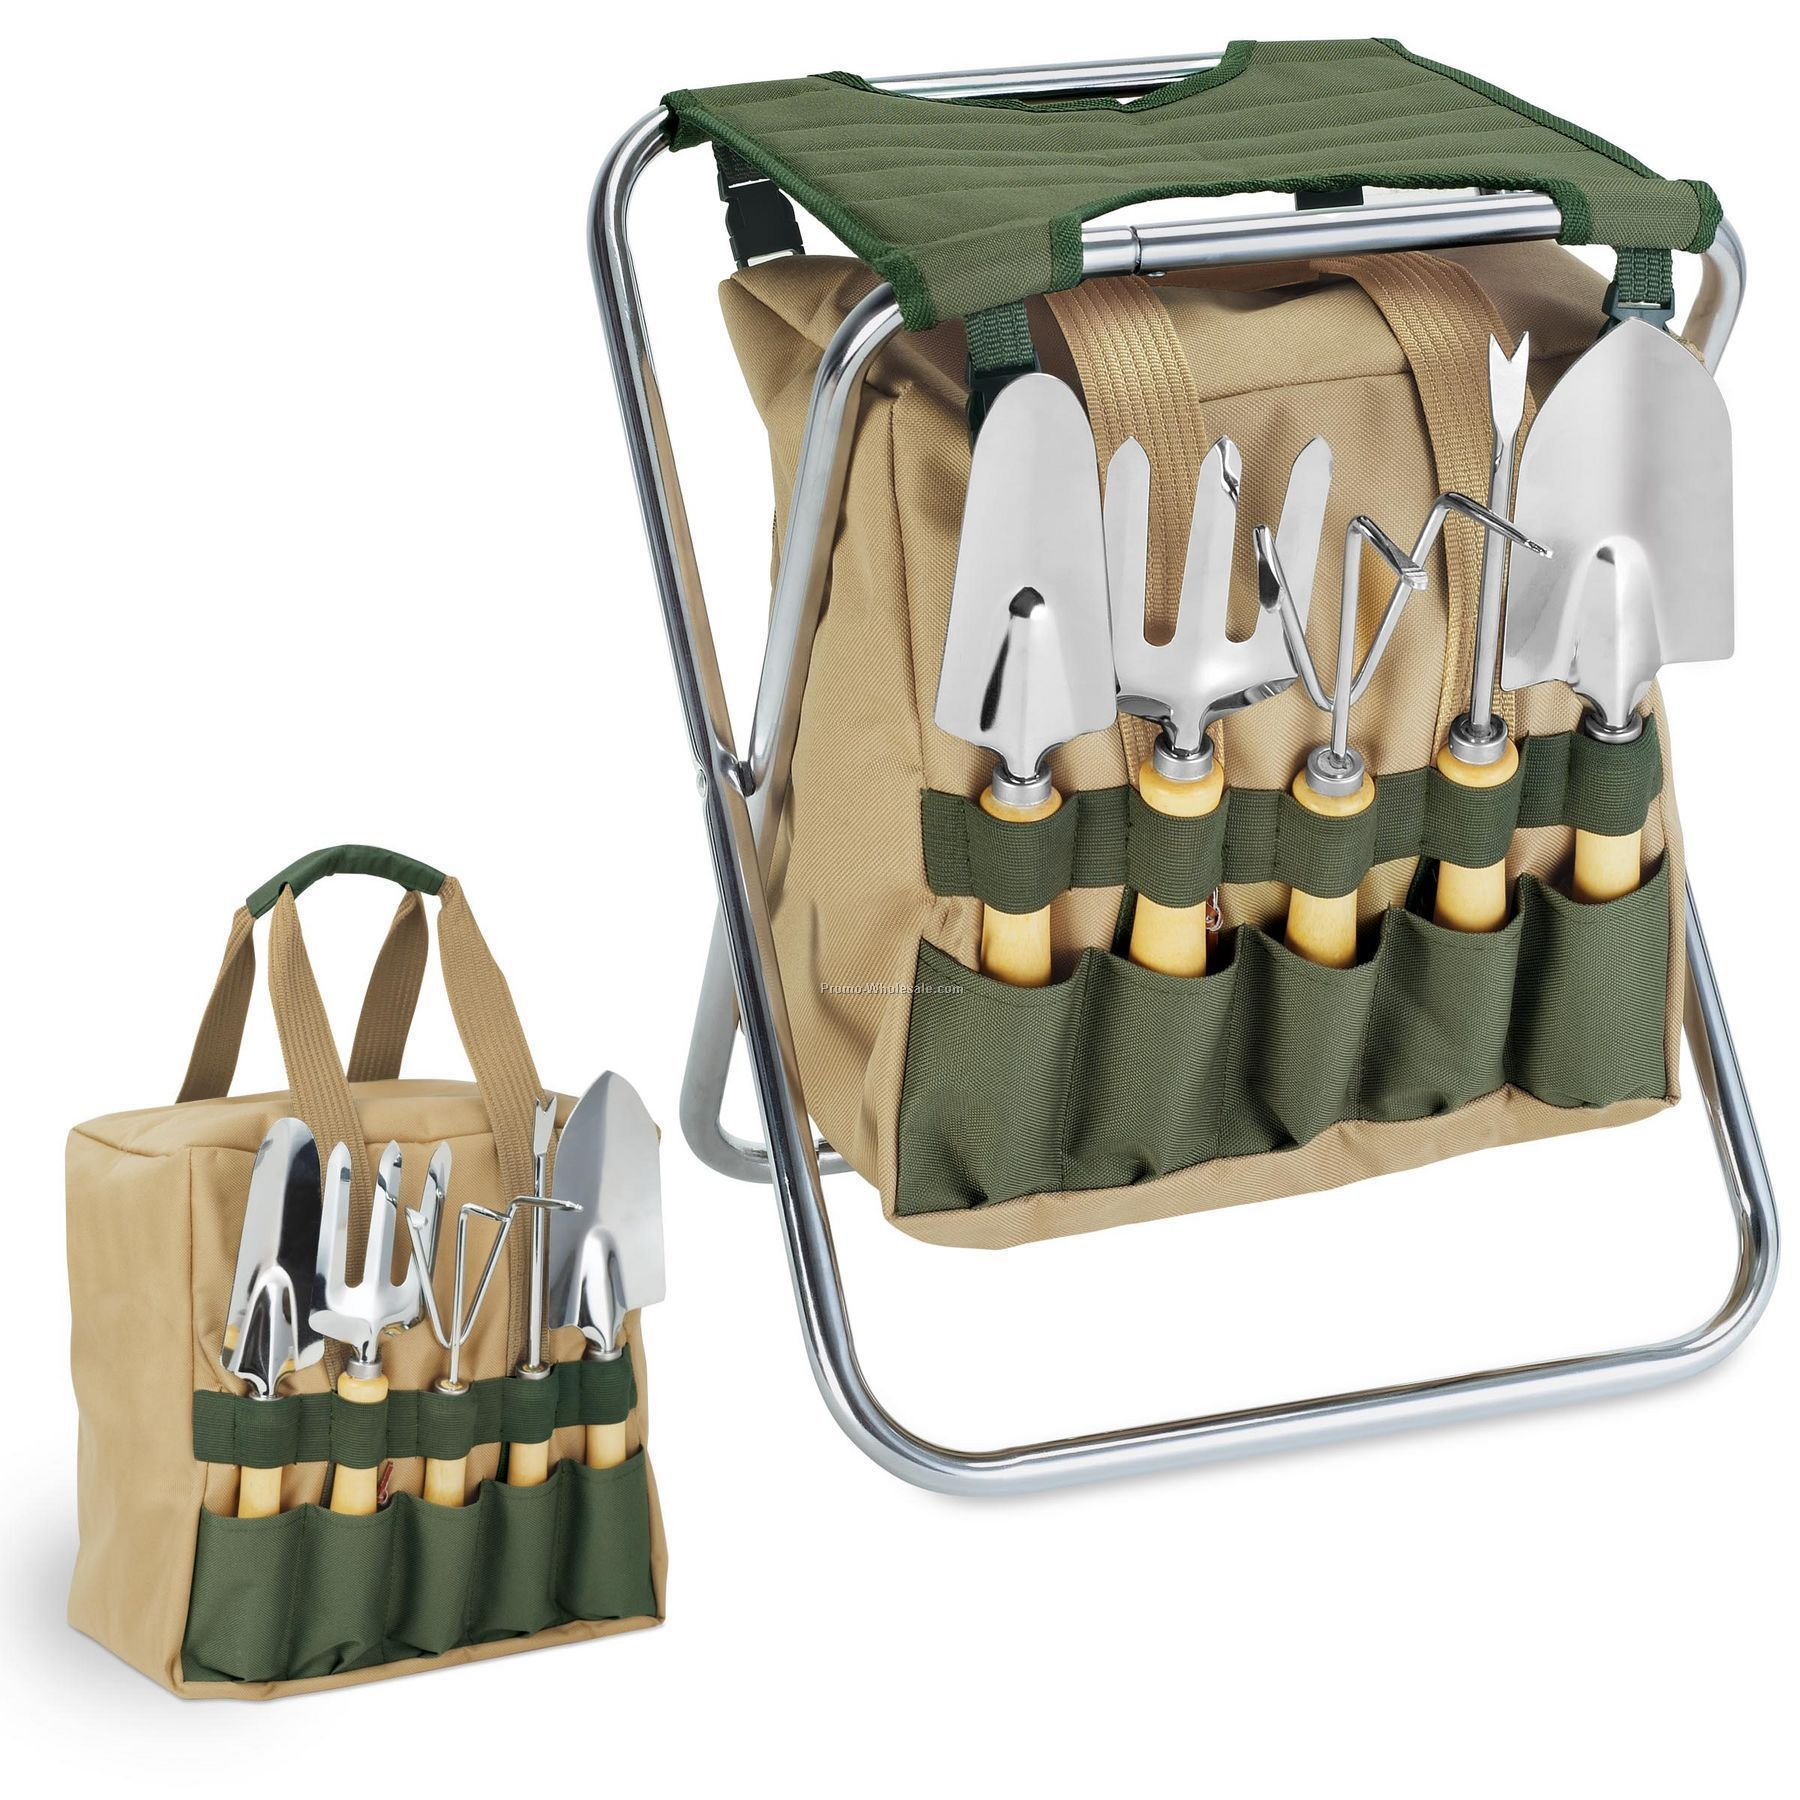 73b4ea795876921497ca06317fc2d890 - Picnic Time Gardener Folding Chair With Tools